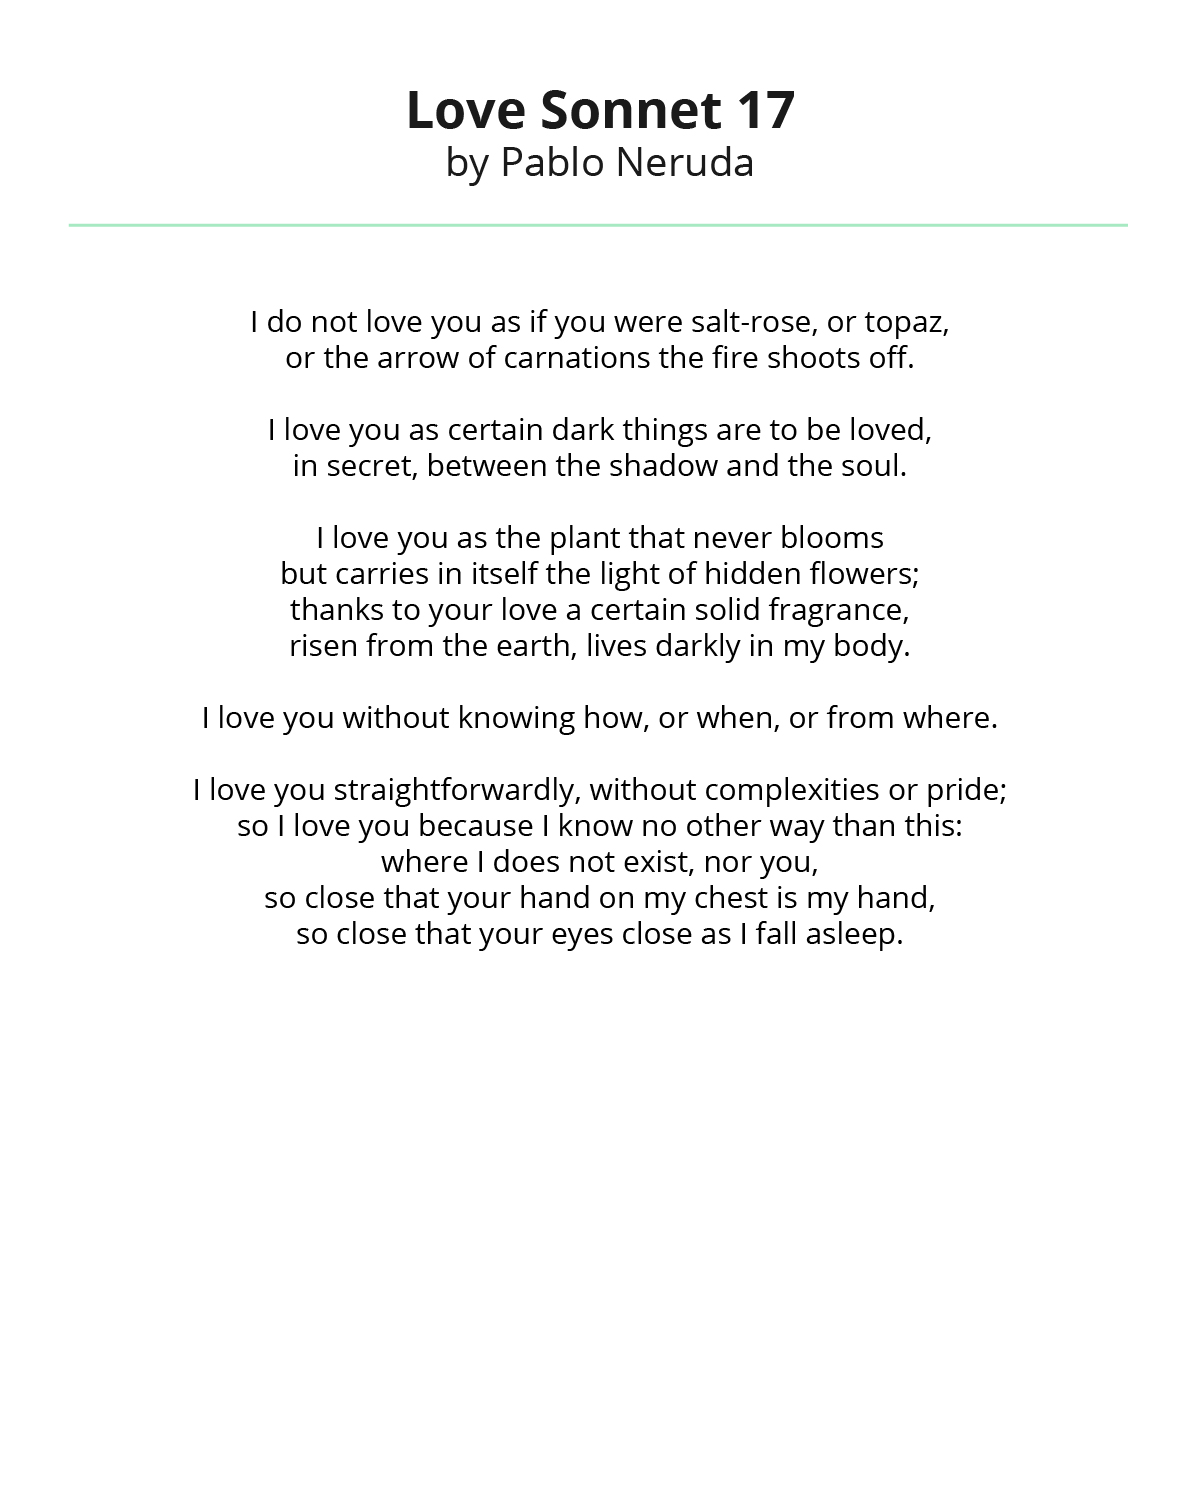 Love Sonnet by Pablo Neruda